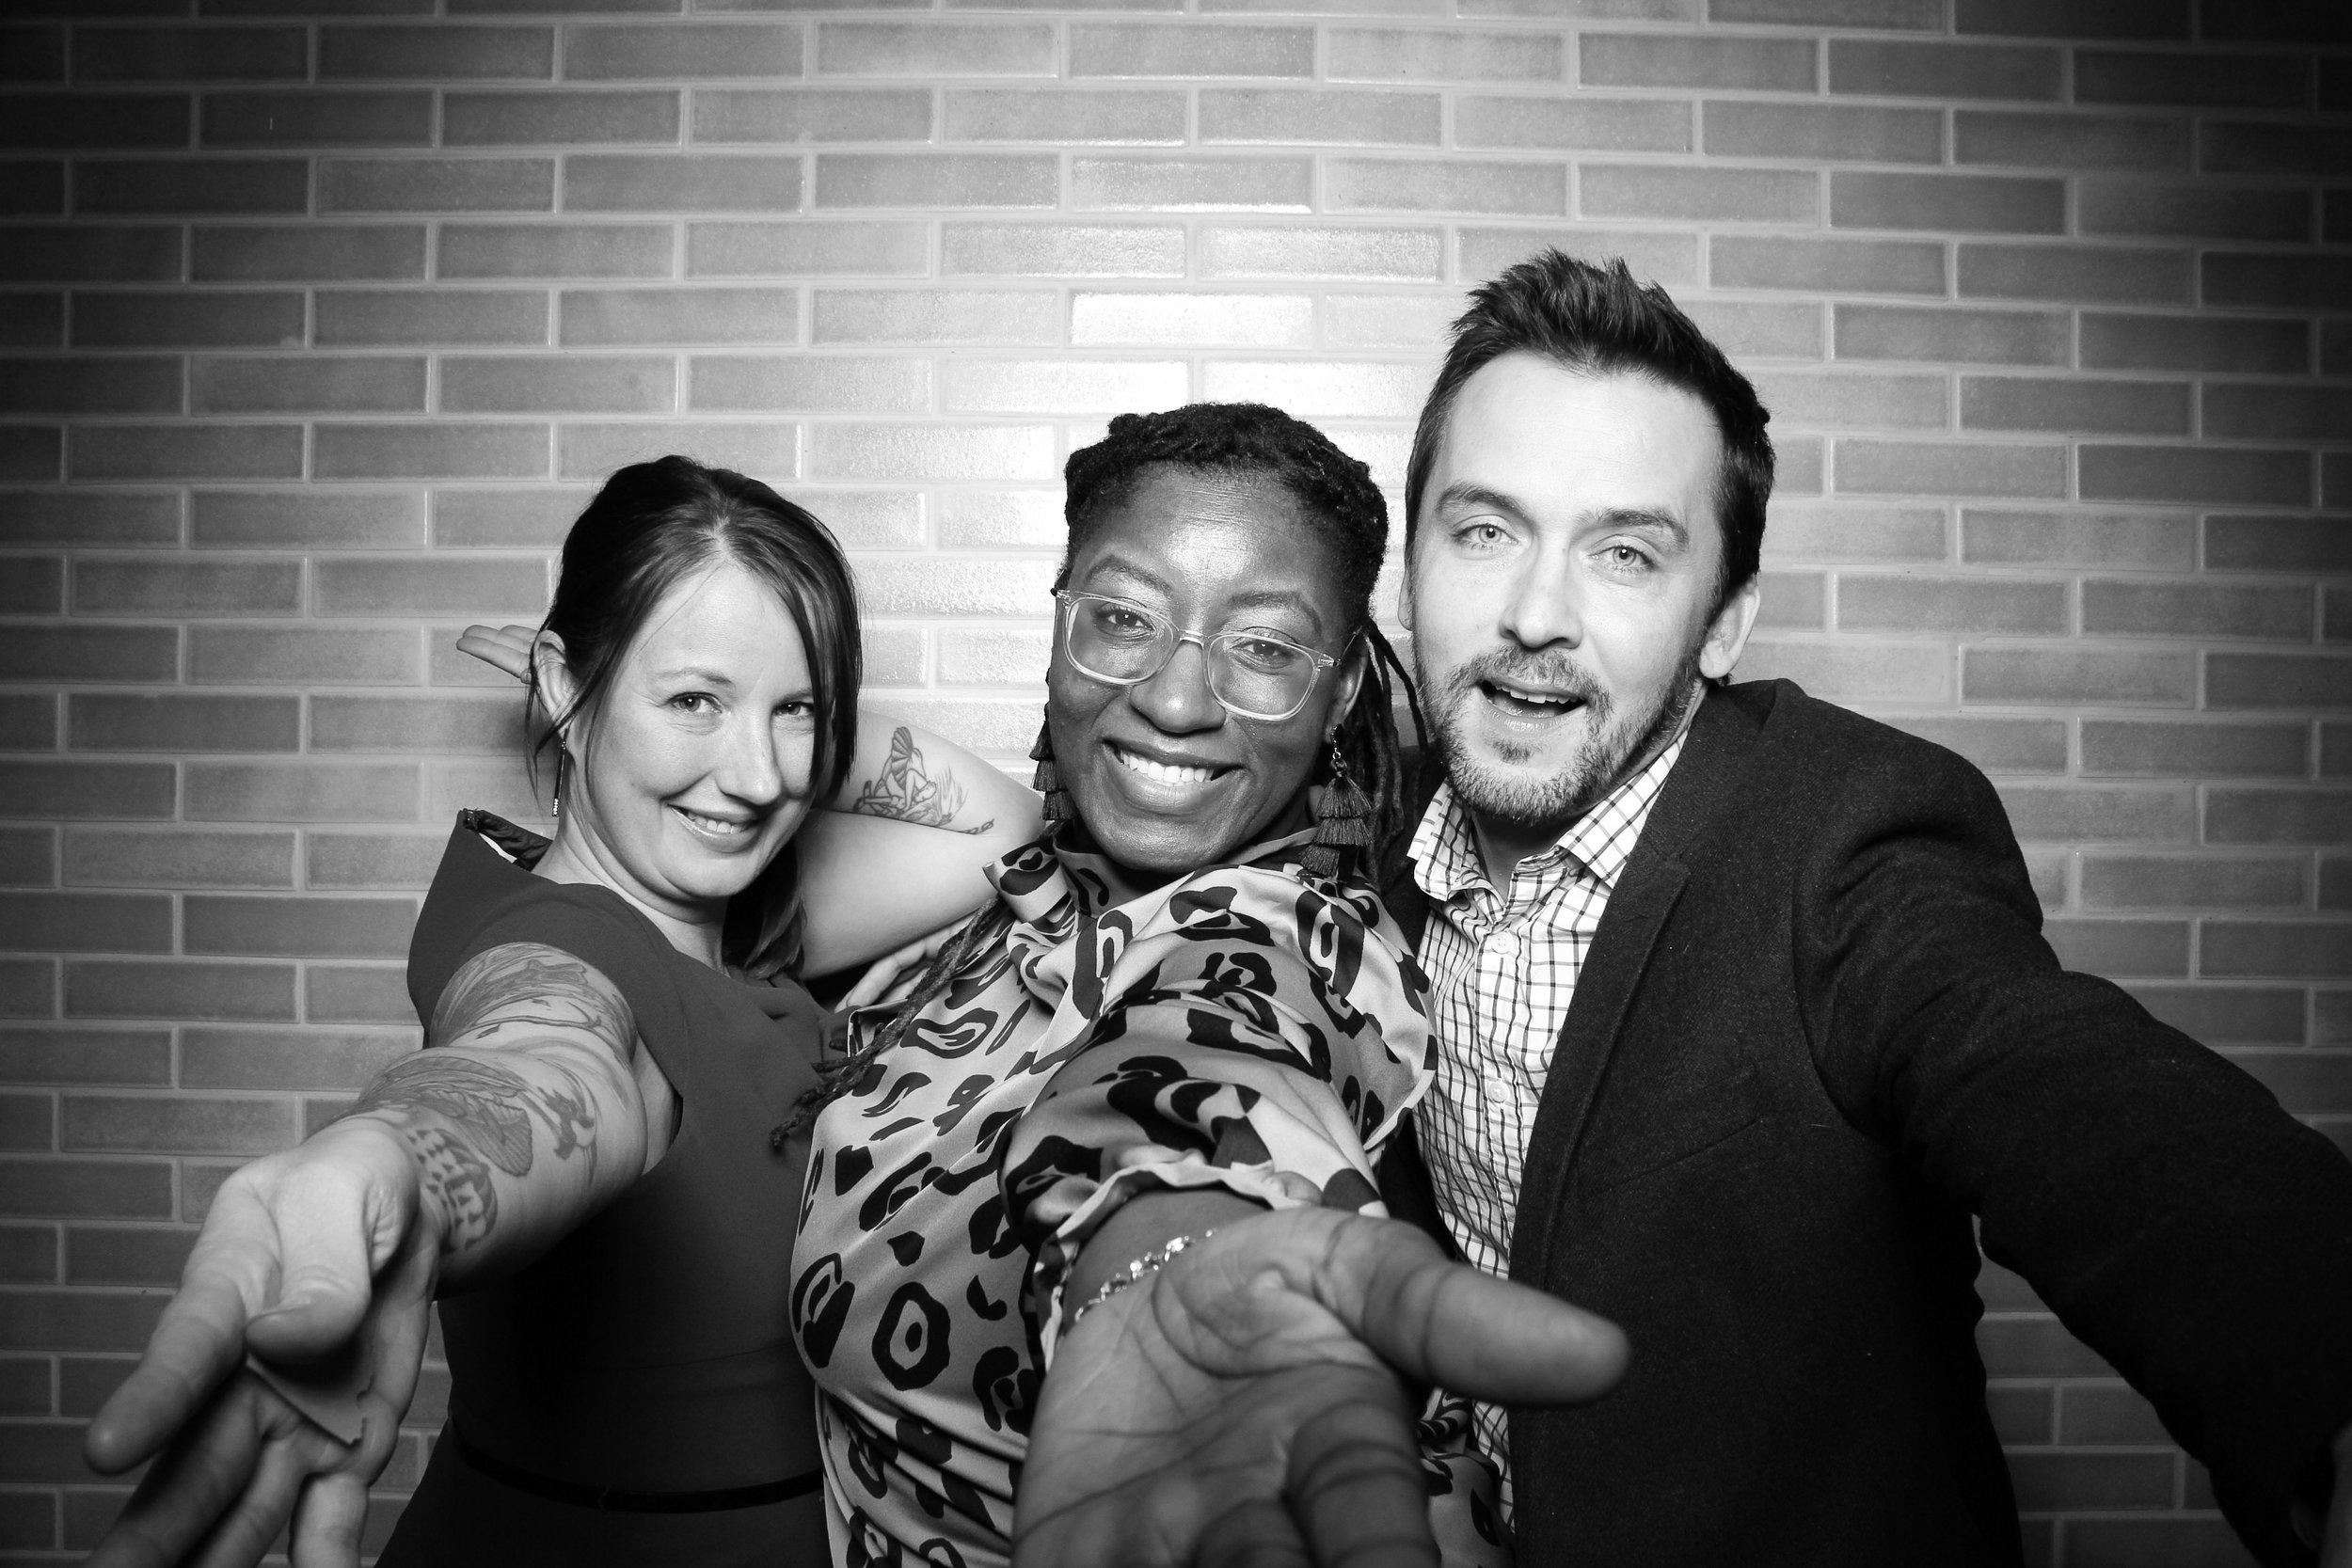 Chicago_Vintage_Photobooth_Holiday_Party_Boleo_31.jpg